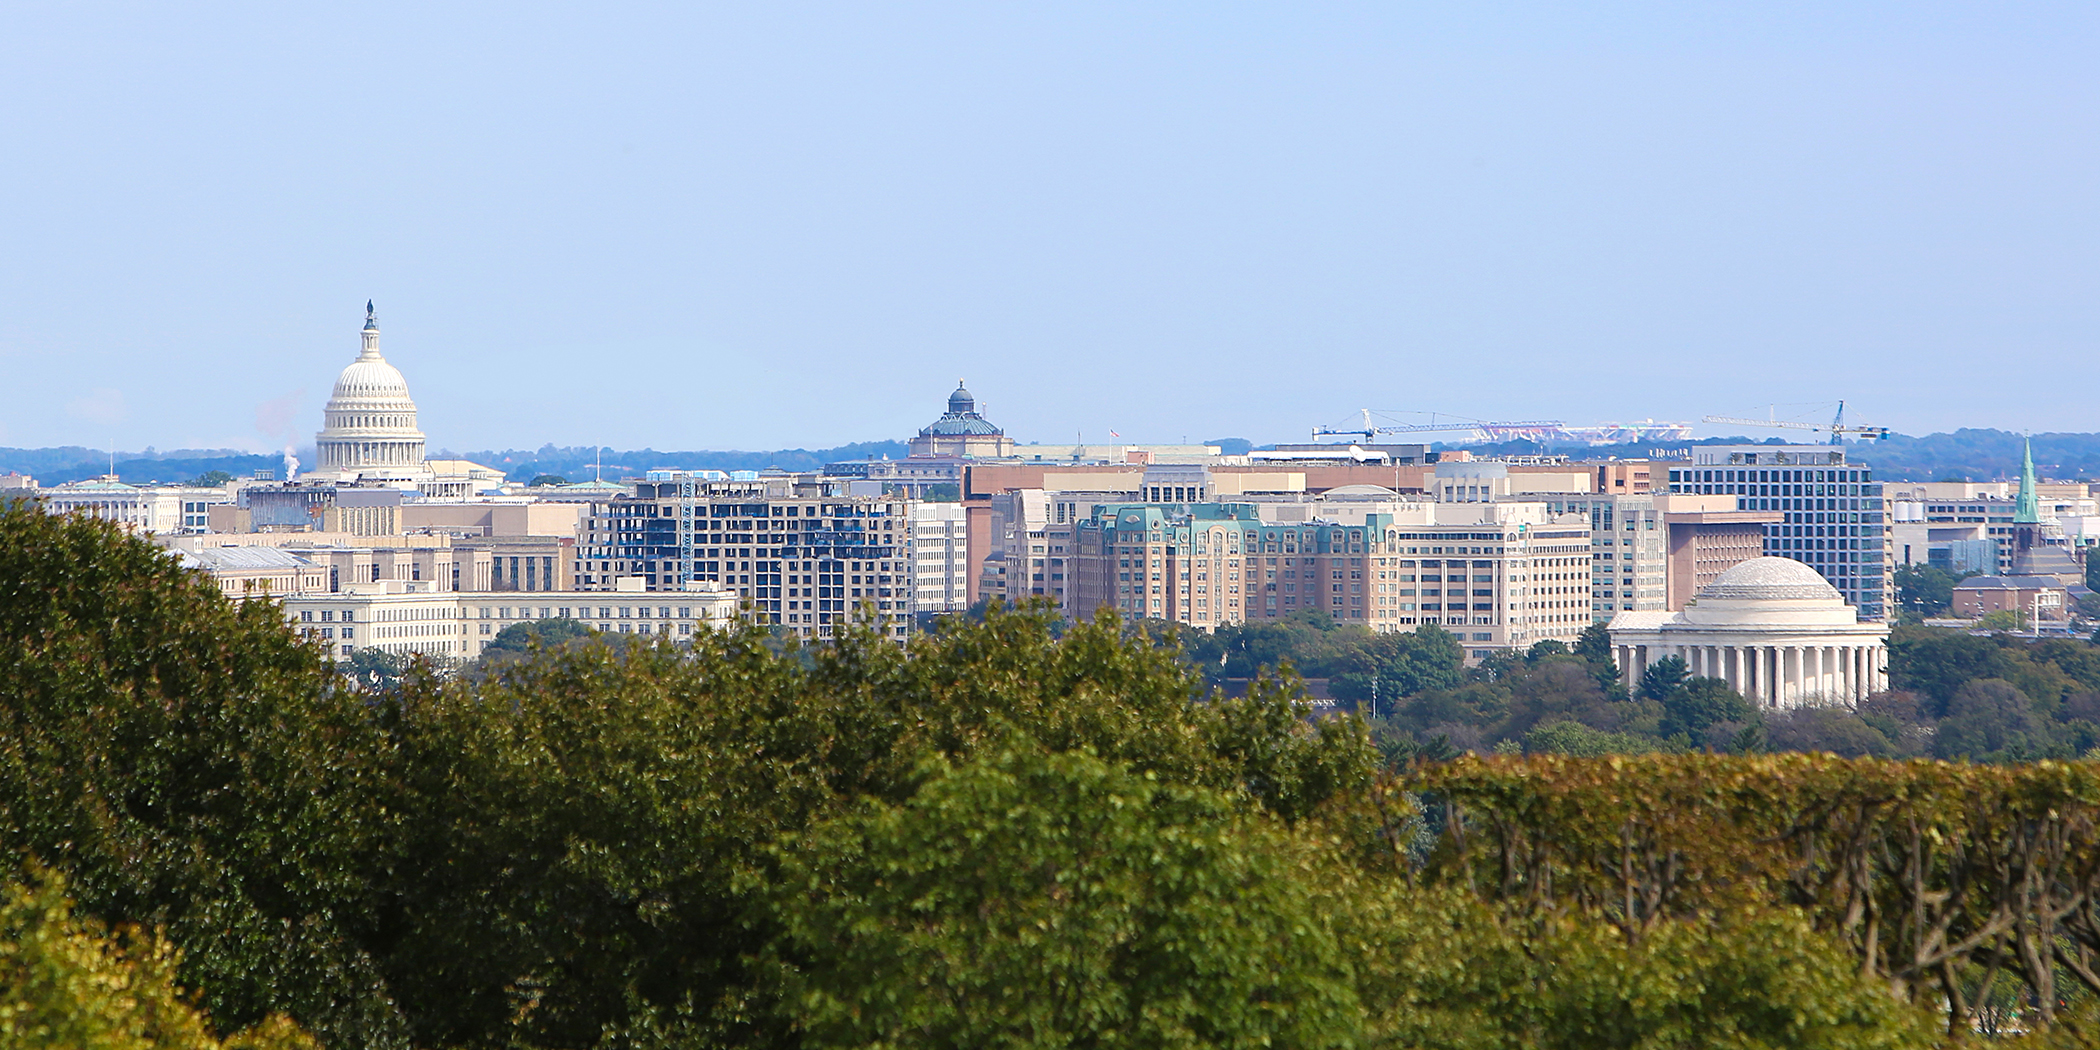 The Washington DC skyline